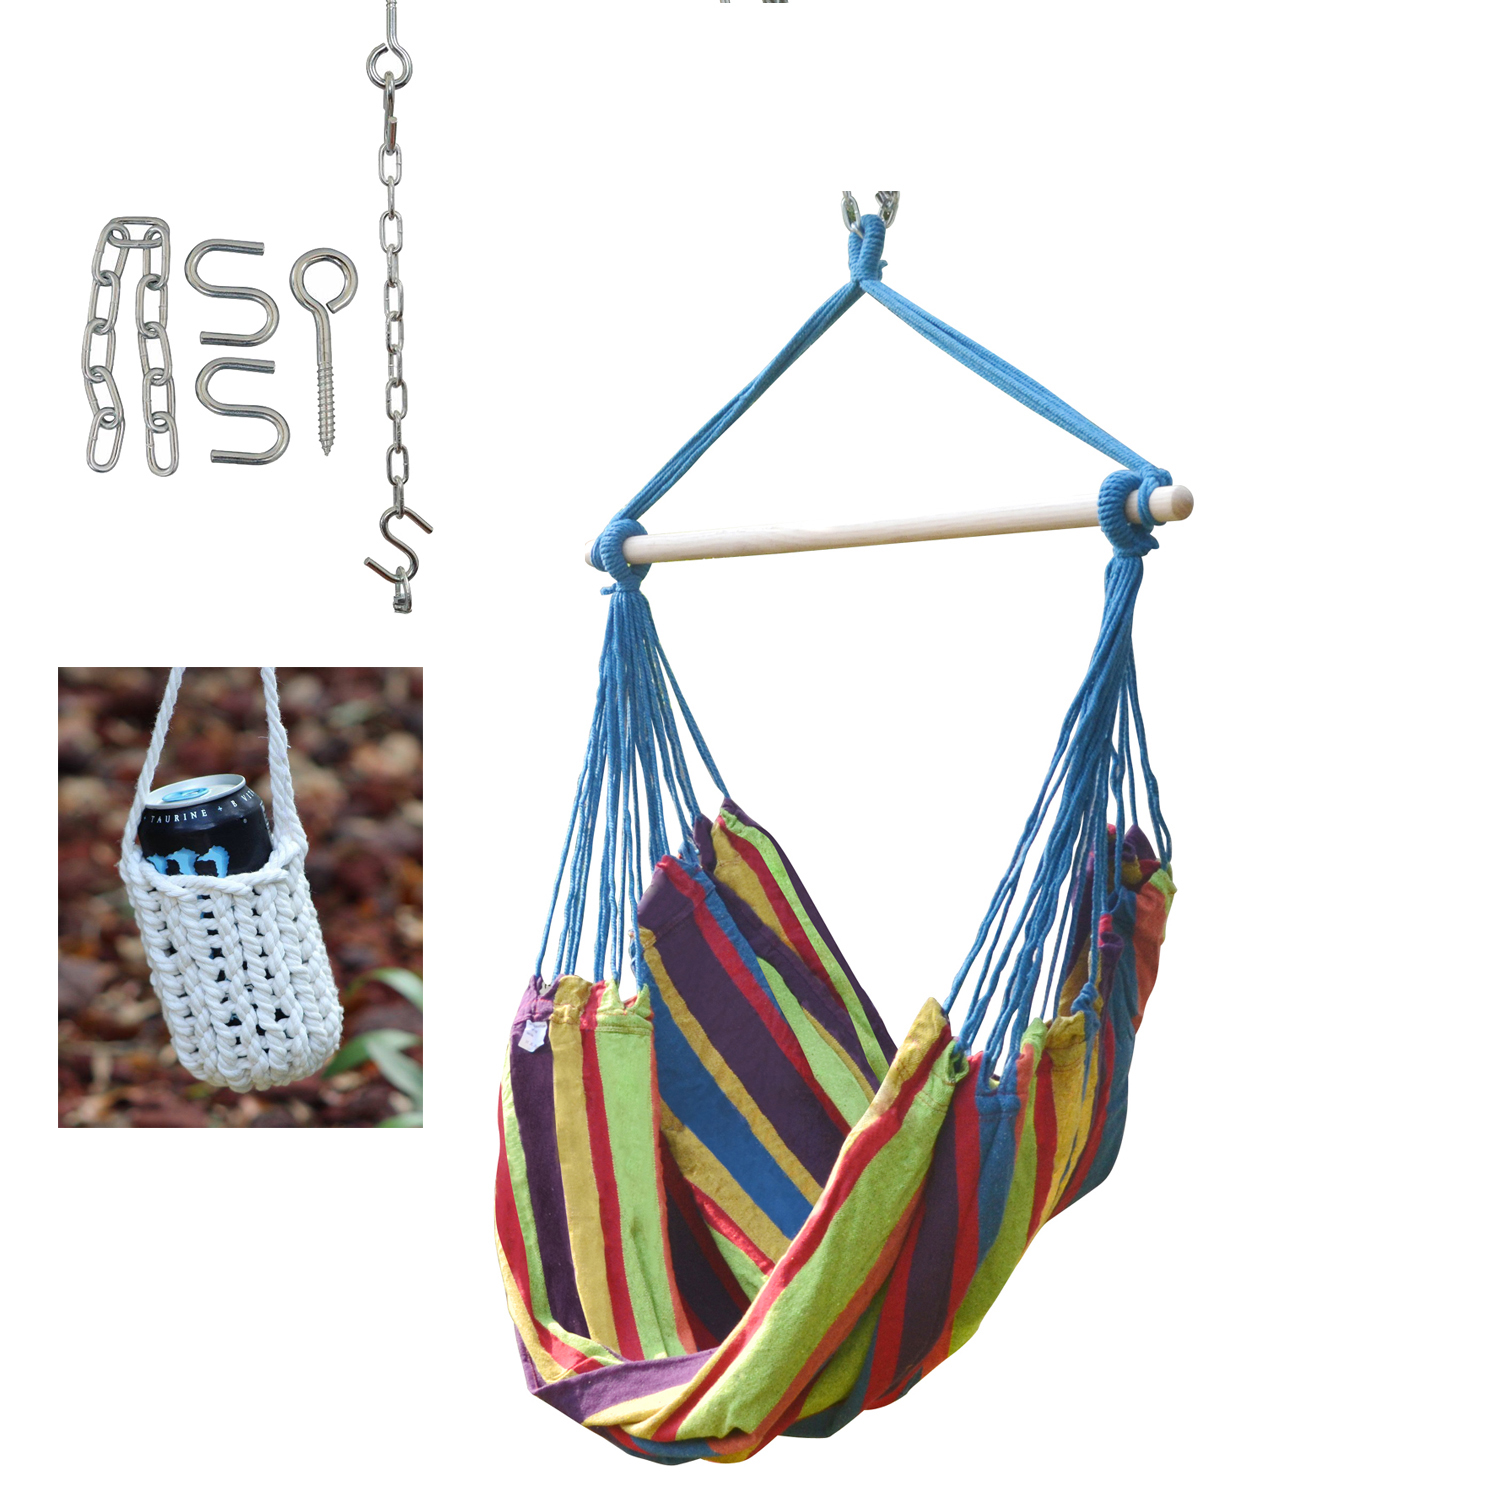 Brazilian Hammock Swing Chair With Hanging Hardware and